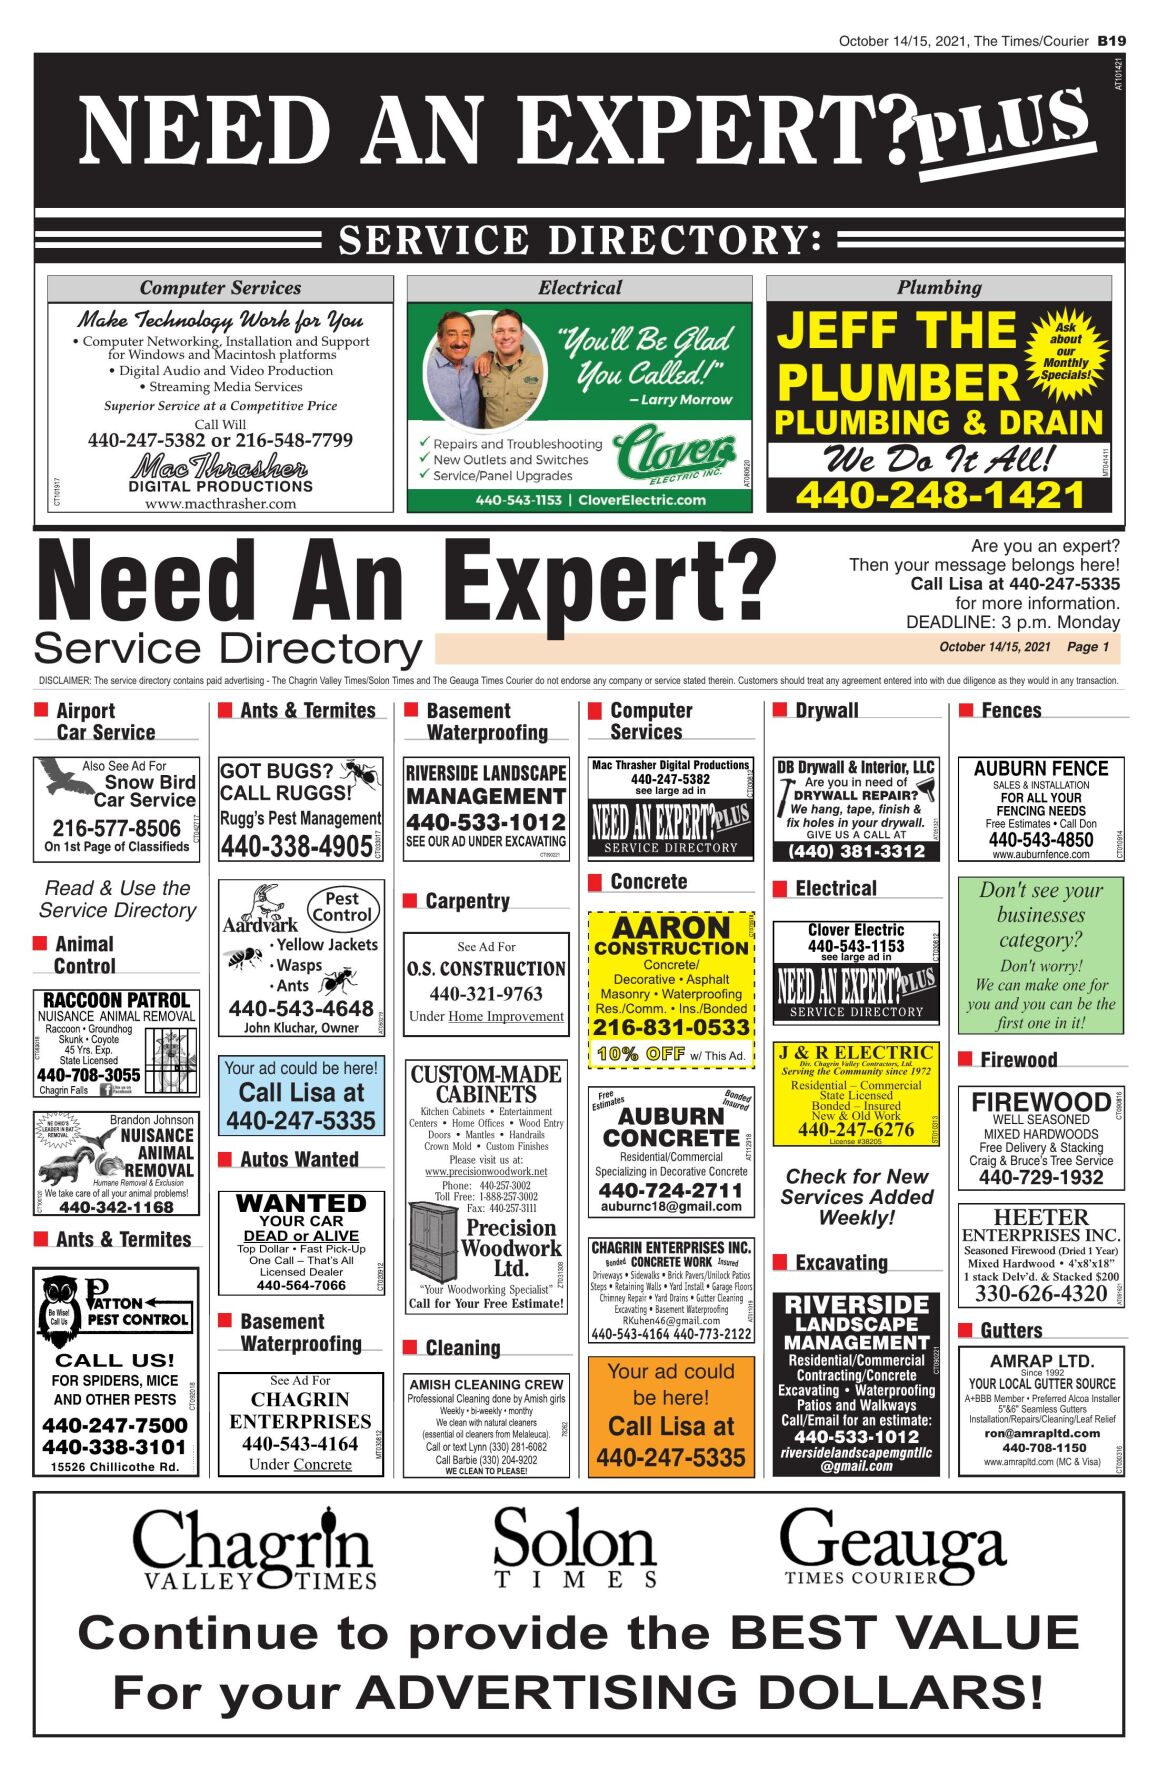 Need an Expert page 1 (Oct 14)